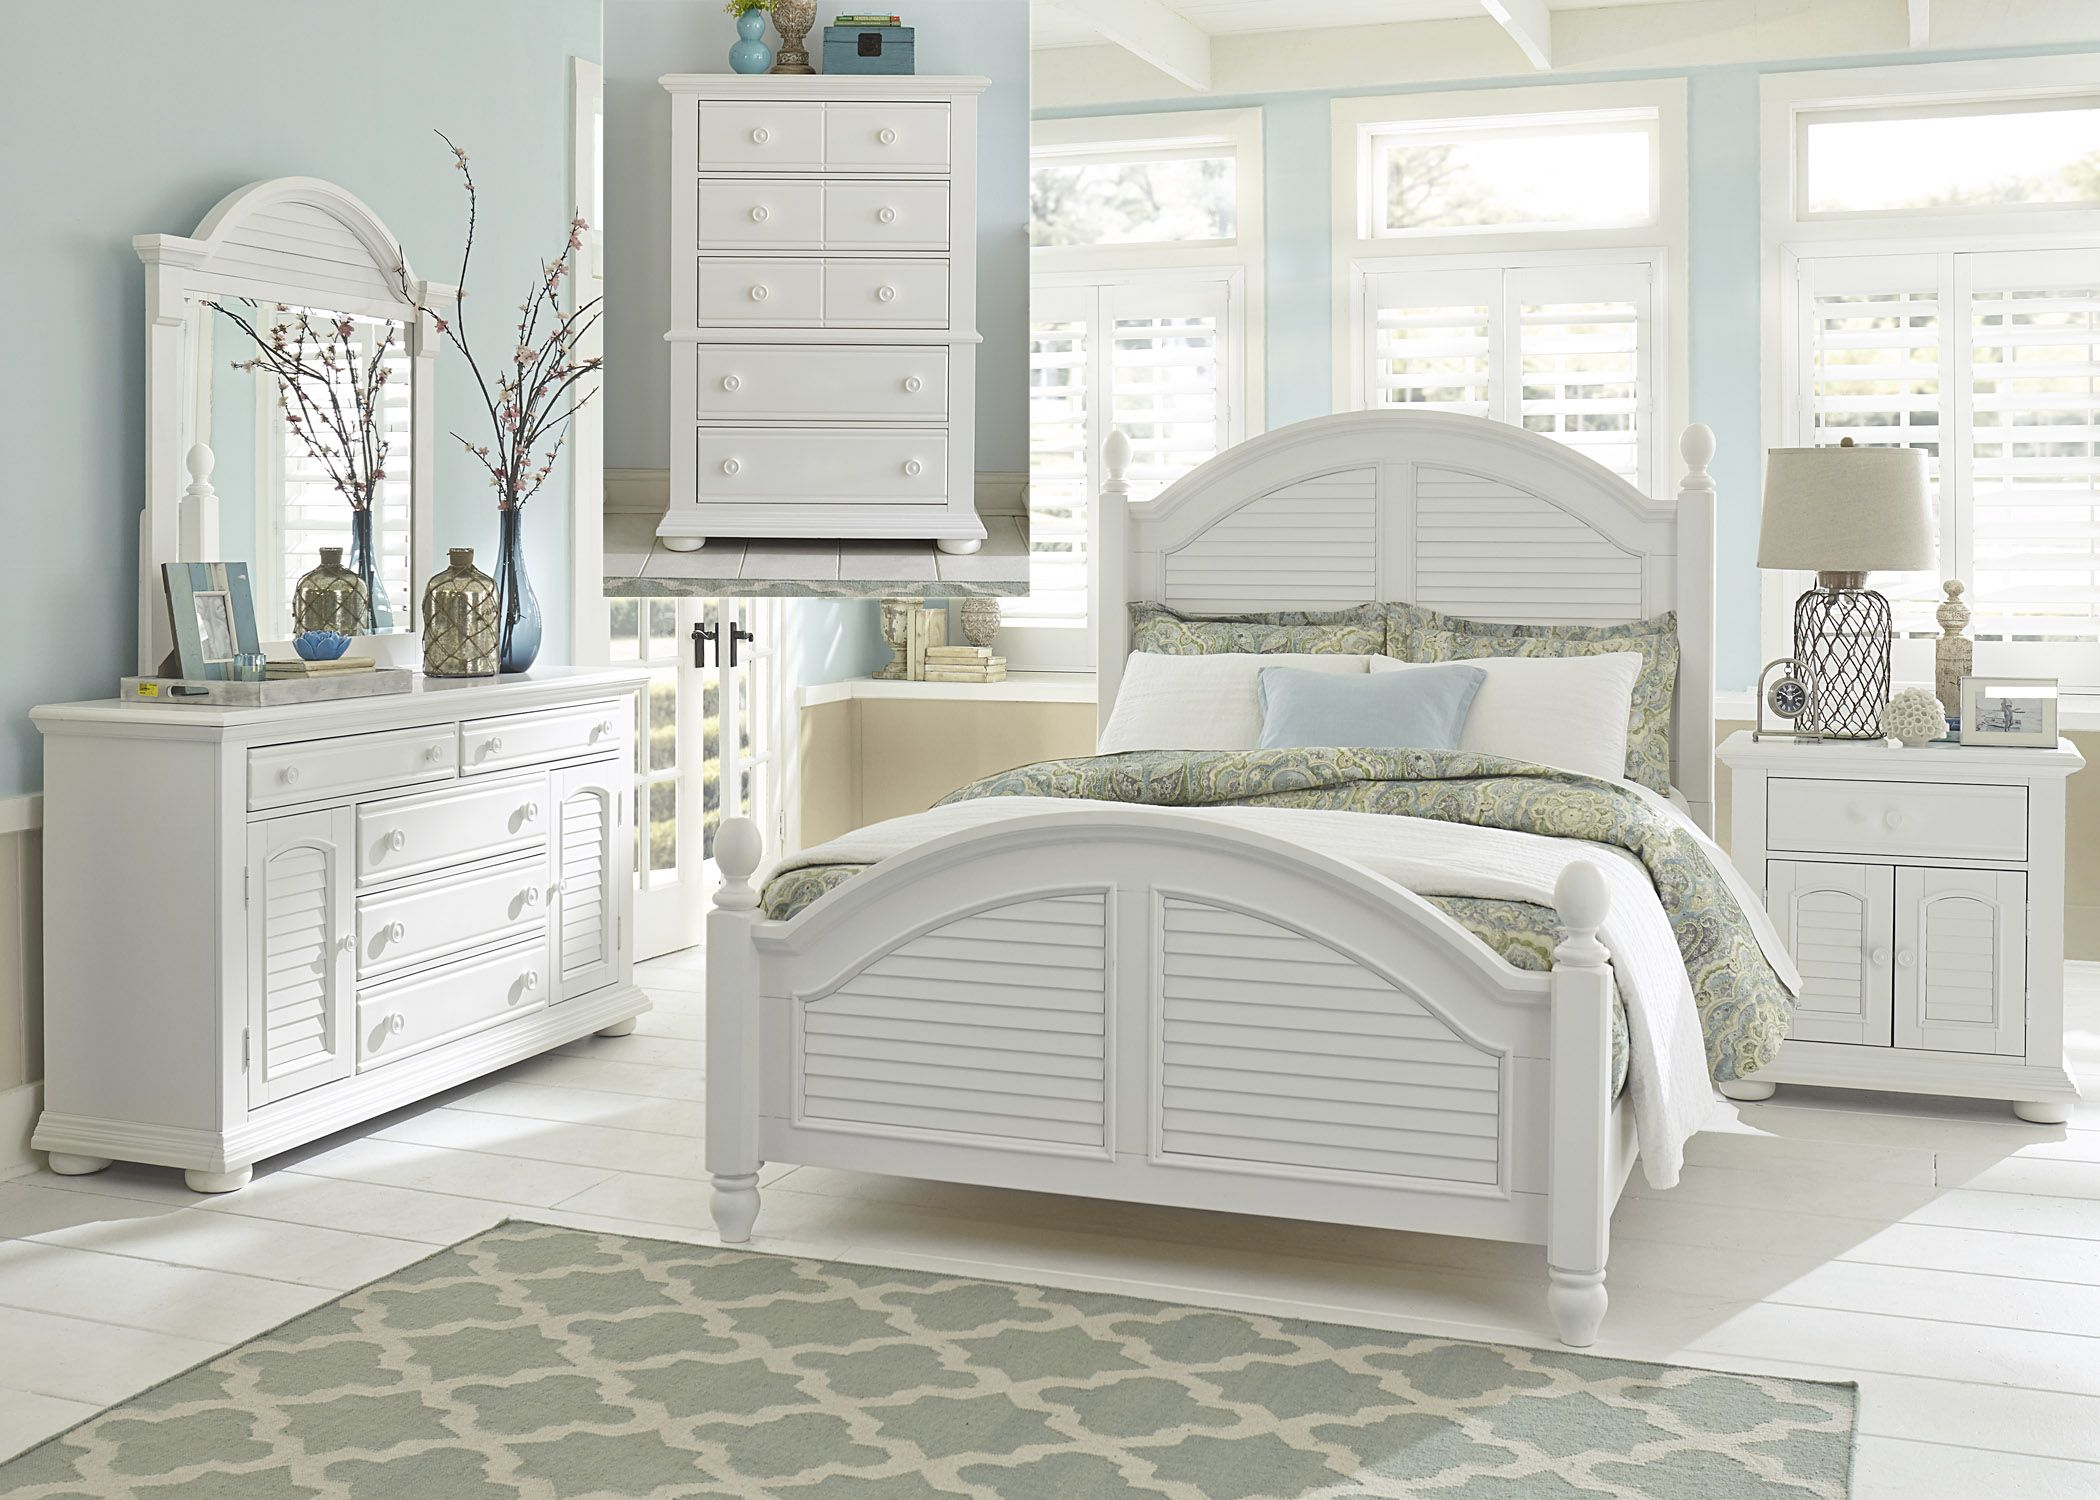 Summer House Oyster White Queen Poster Bedroom SetMedia Image